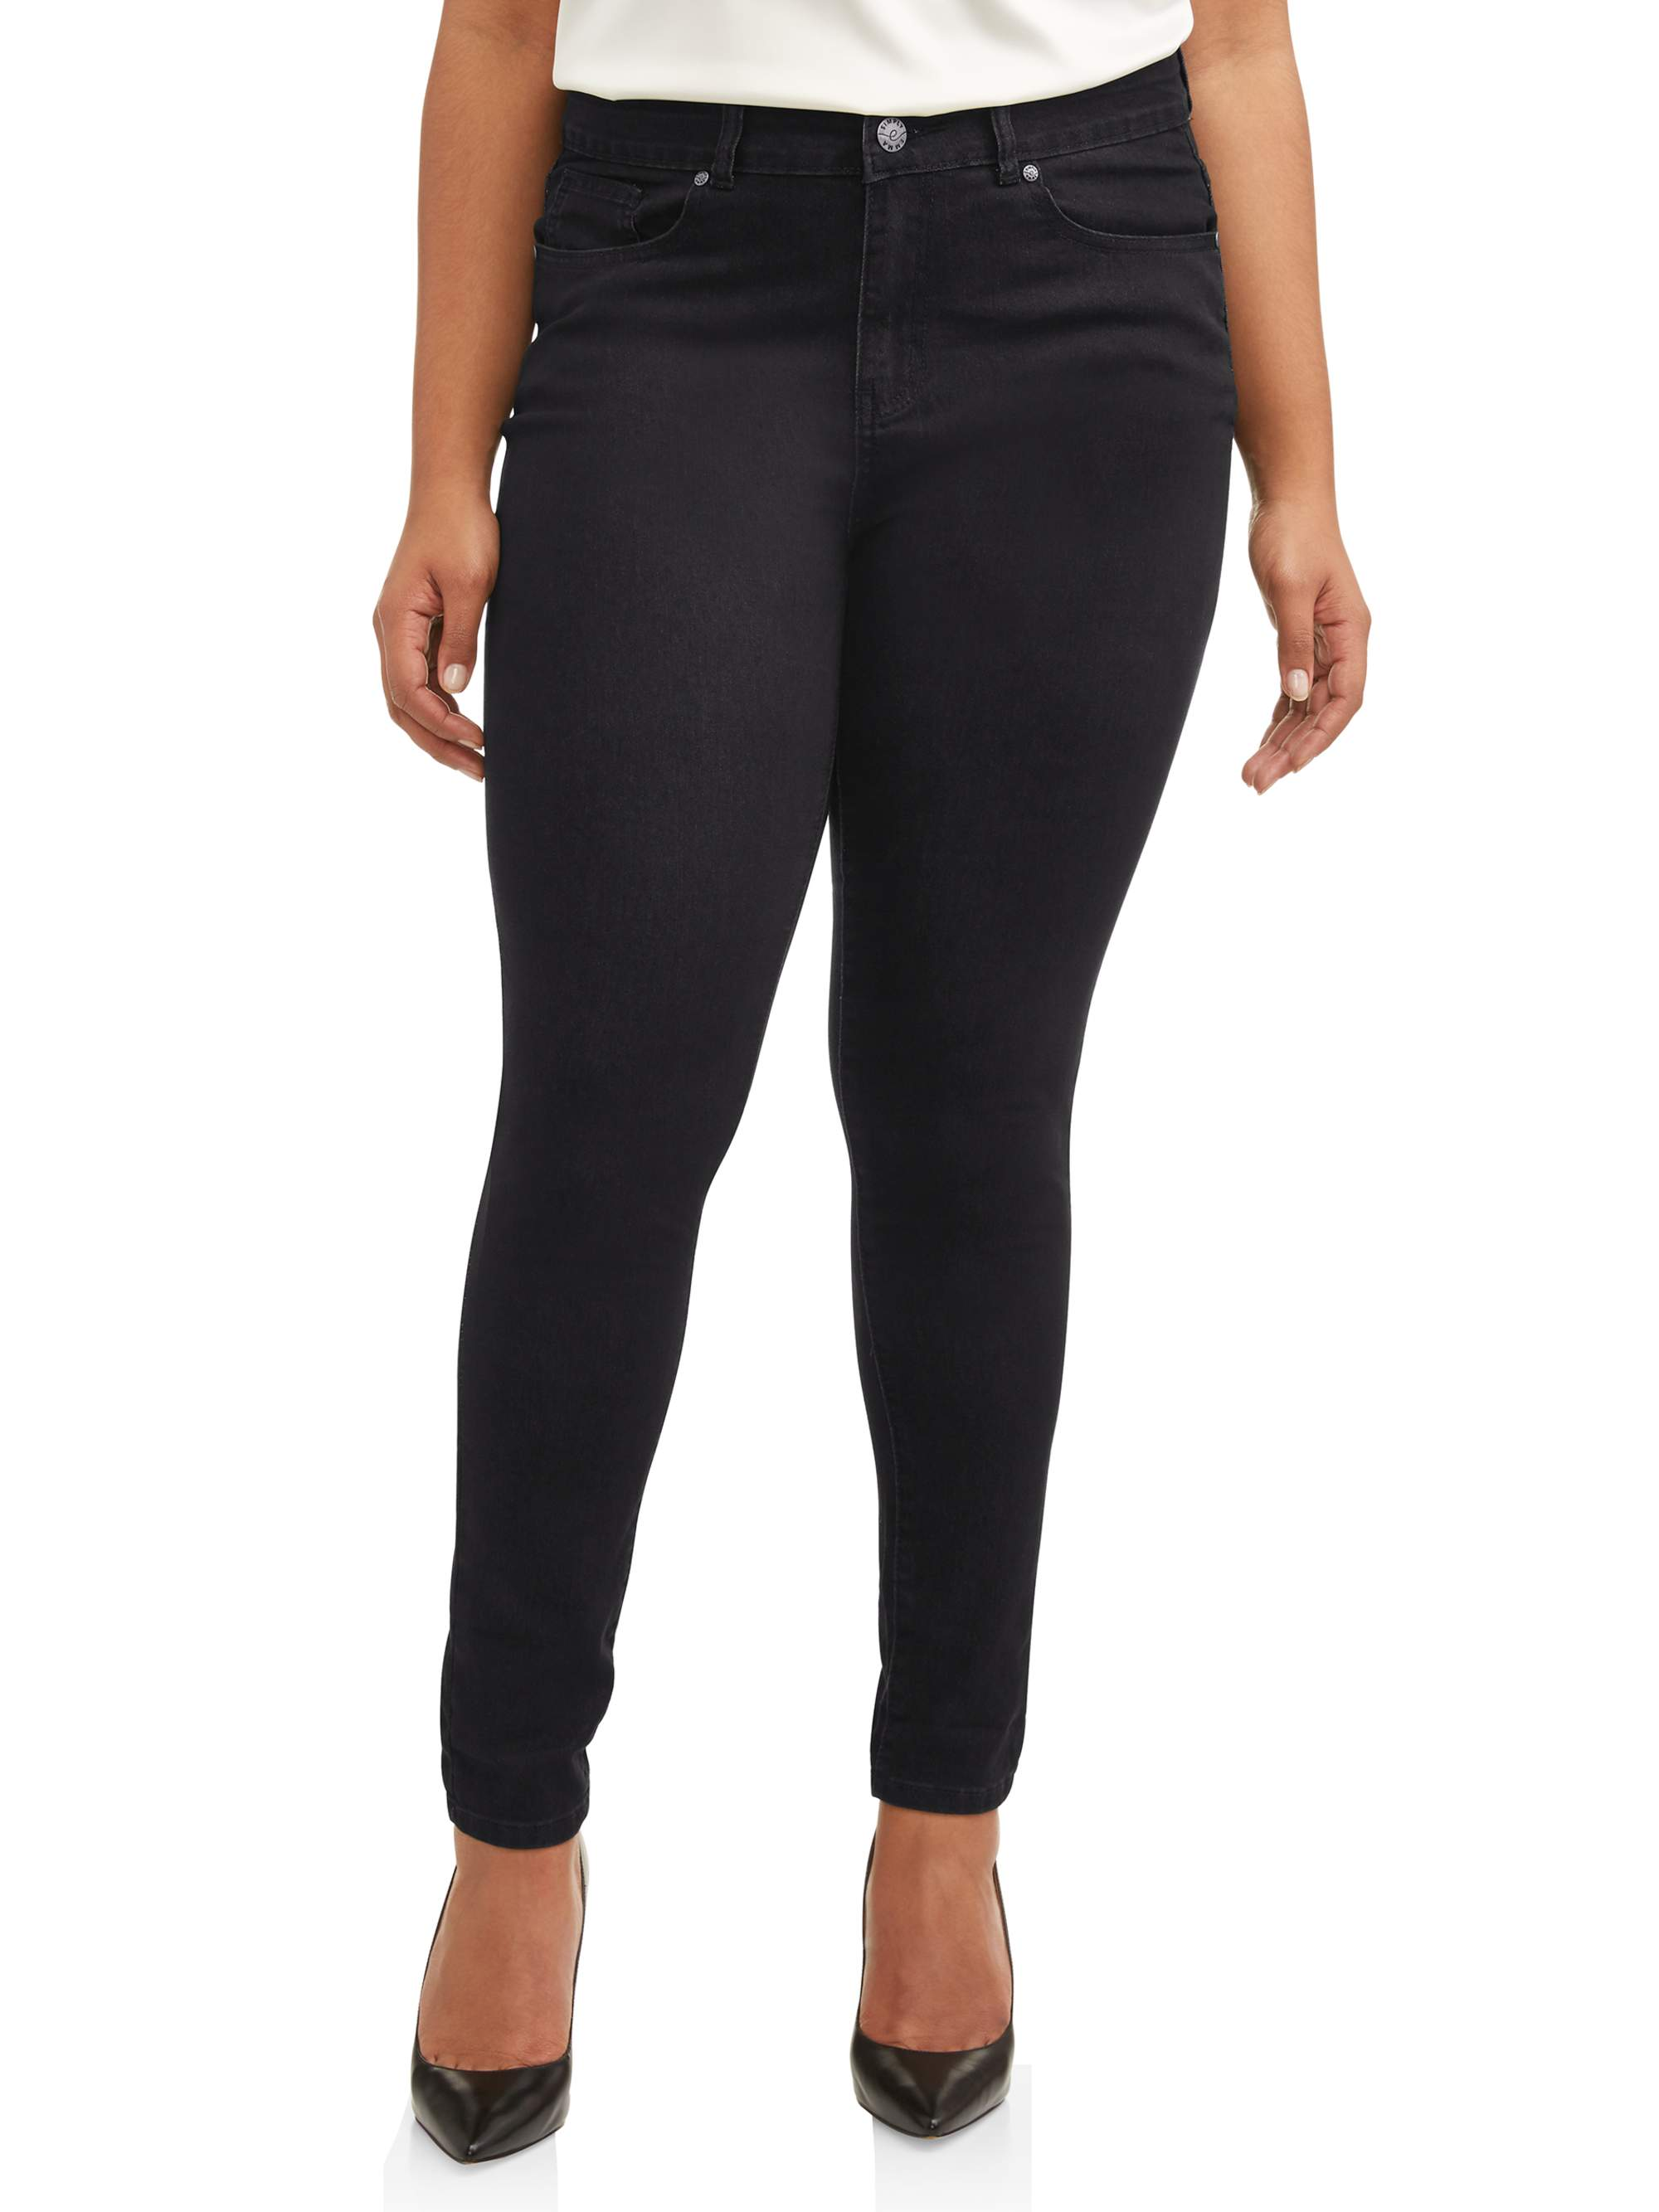 Women's Plus Size Stretch Jegging